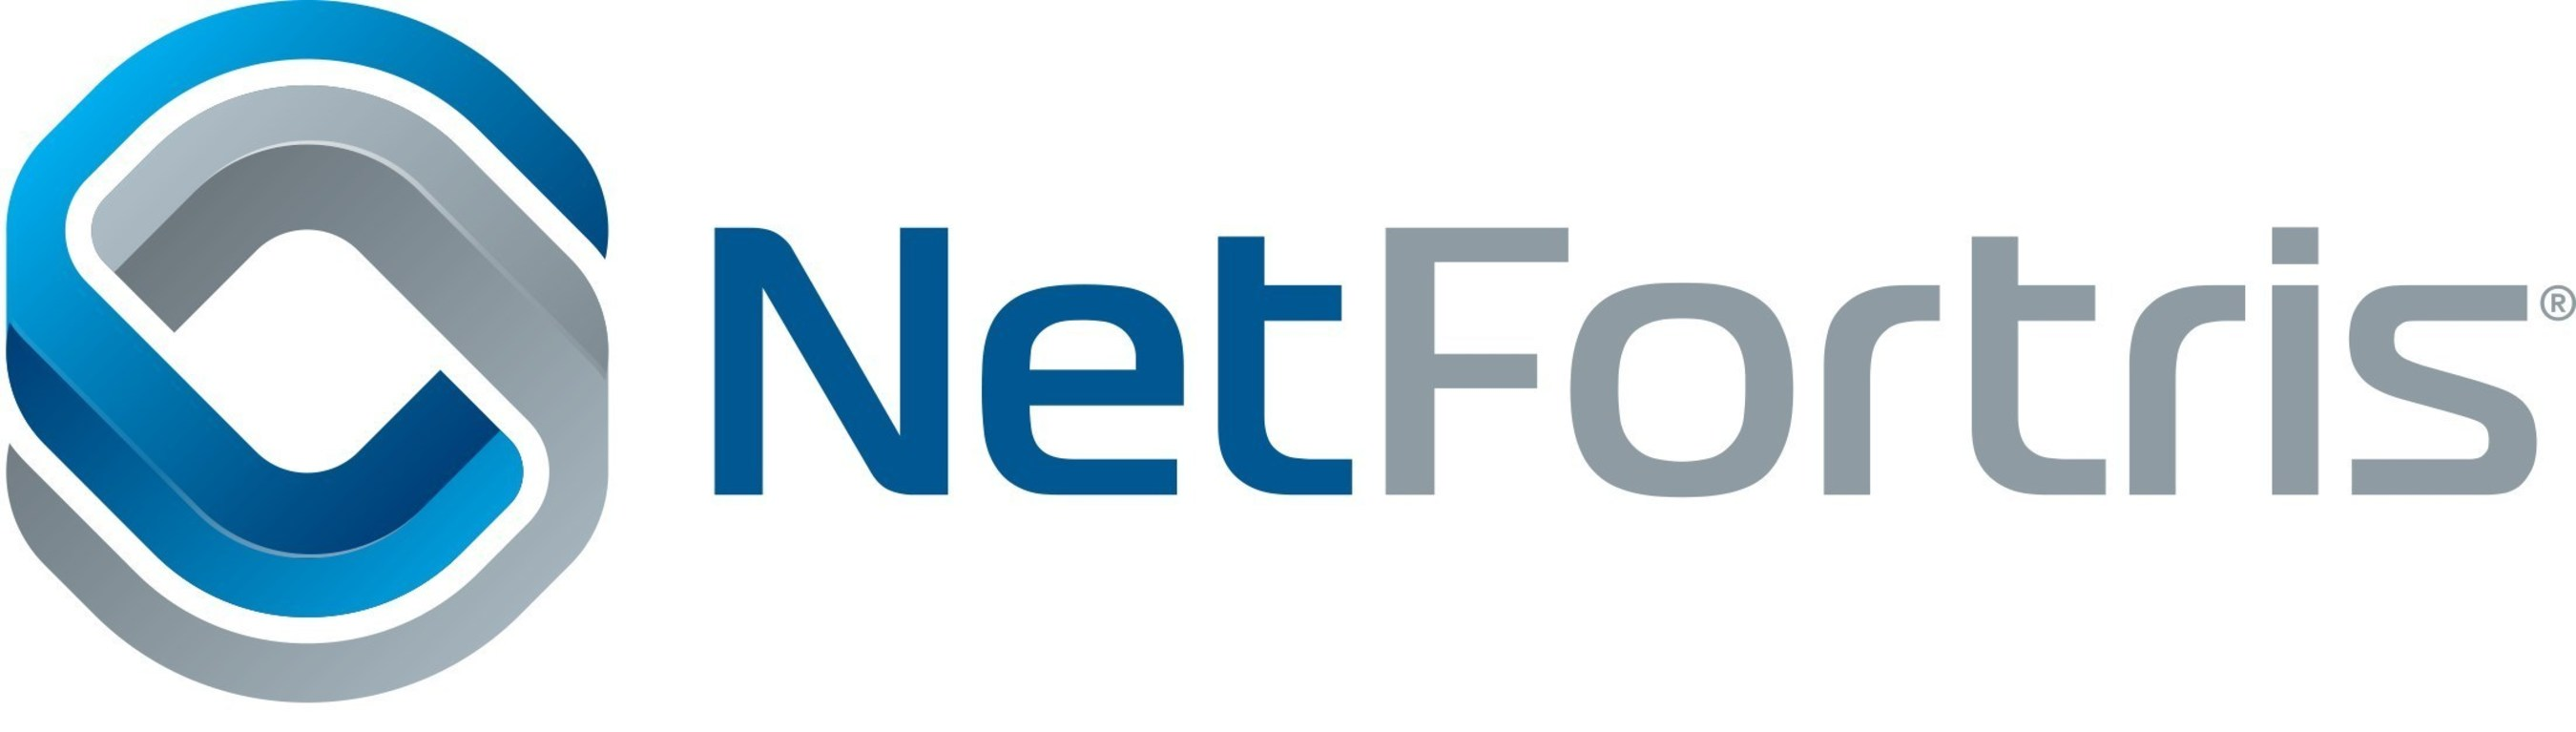 NetFortris, Inc. logo.